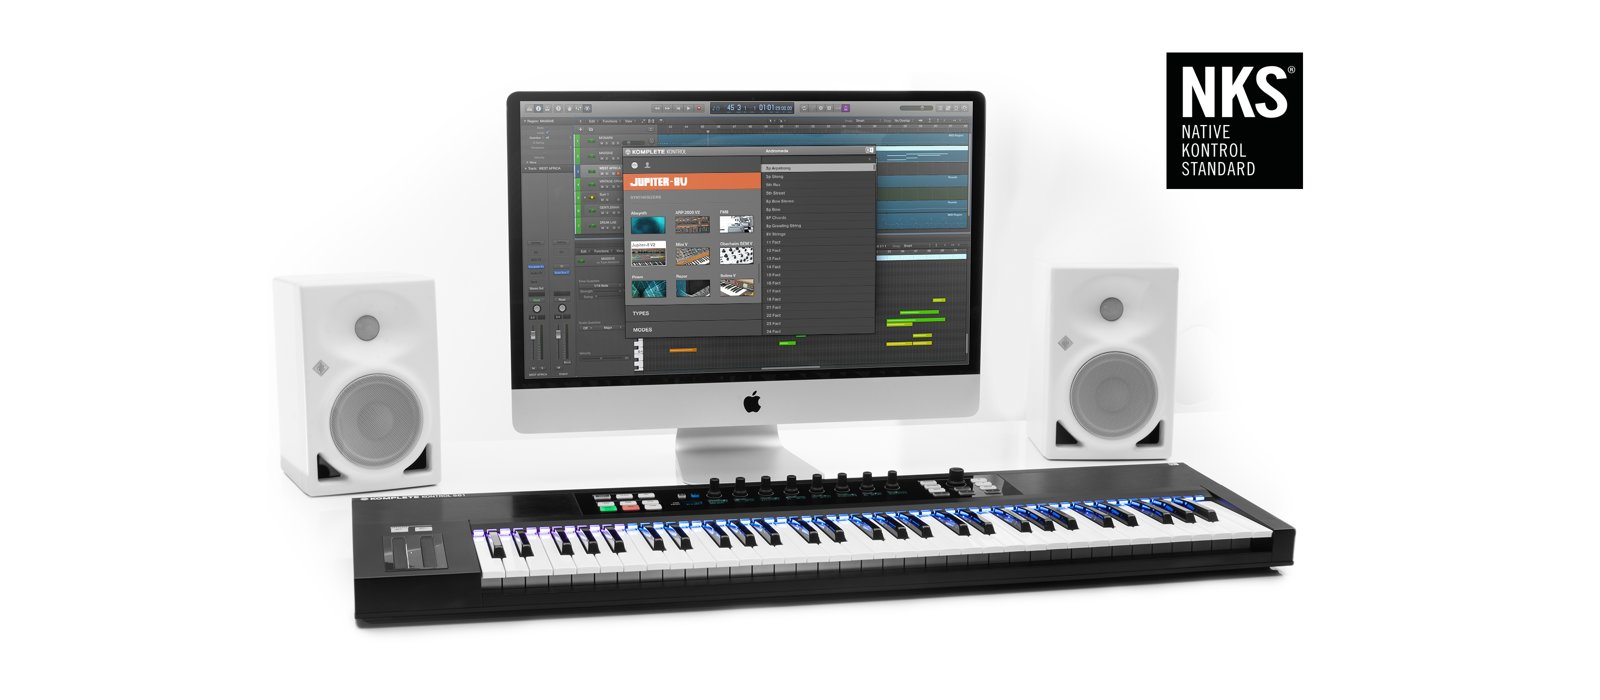 NKS Integration from Native Instruments: What Is It?